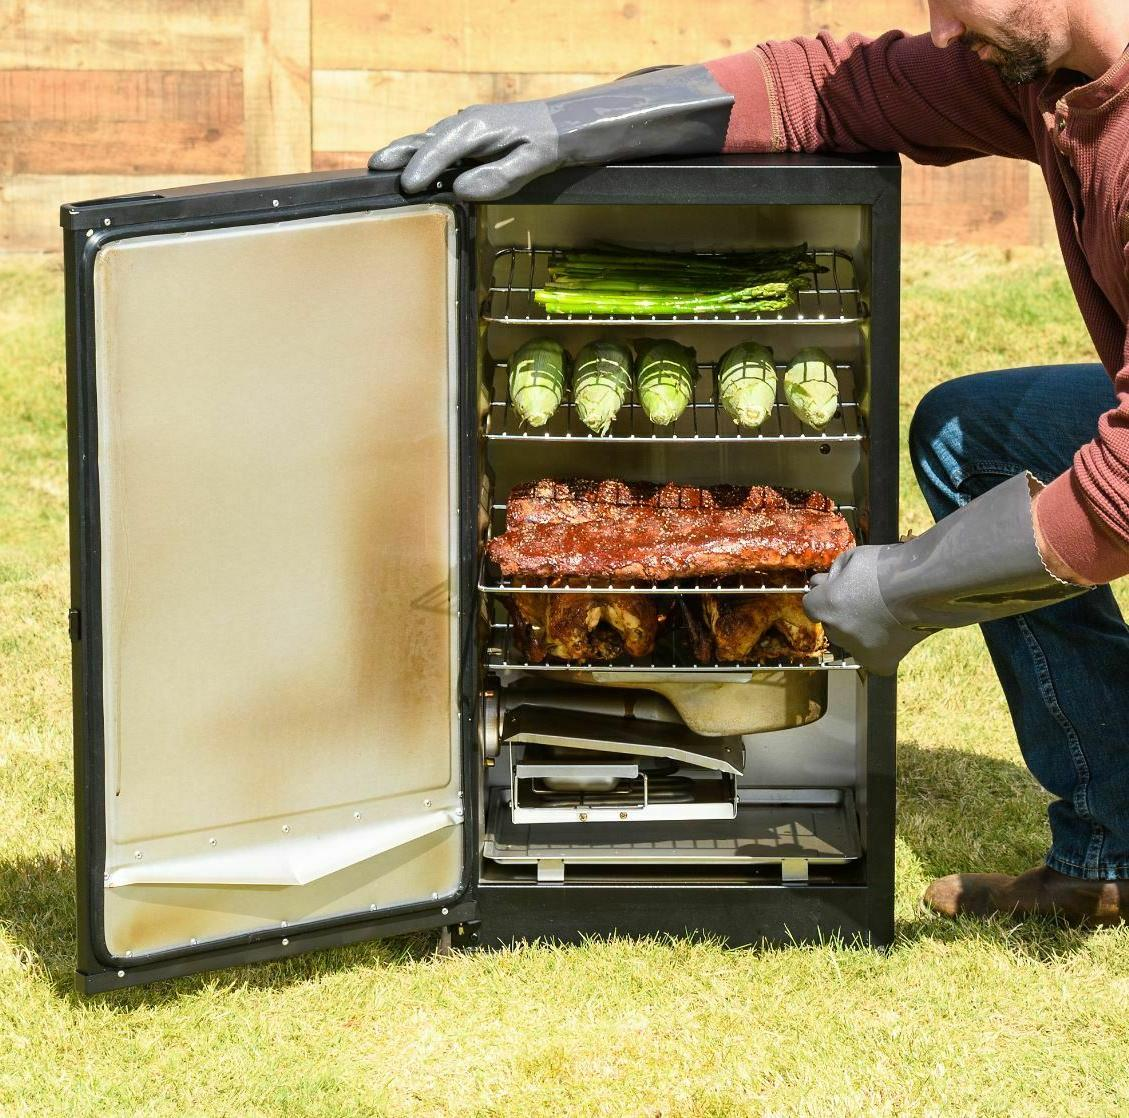 Smoker Electric Panel Loader Outdoors Black Brand New